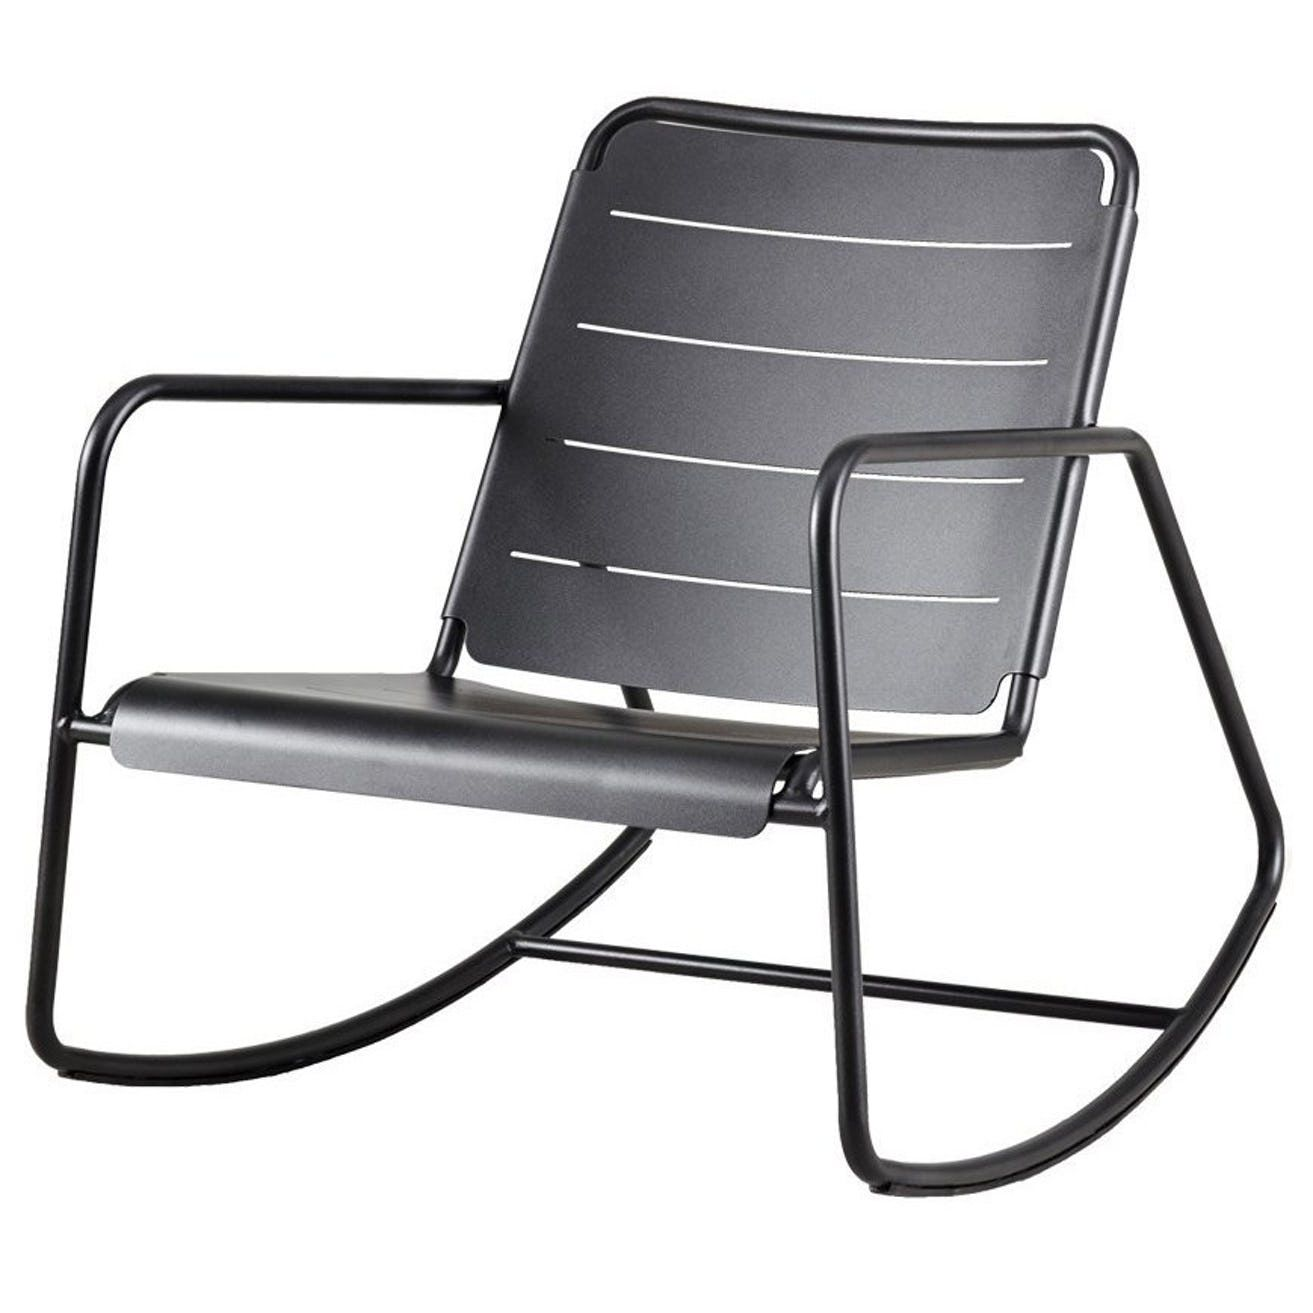 Copenhagen Rocking Chair By Cane Line Now Available At Haute